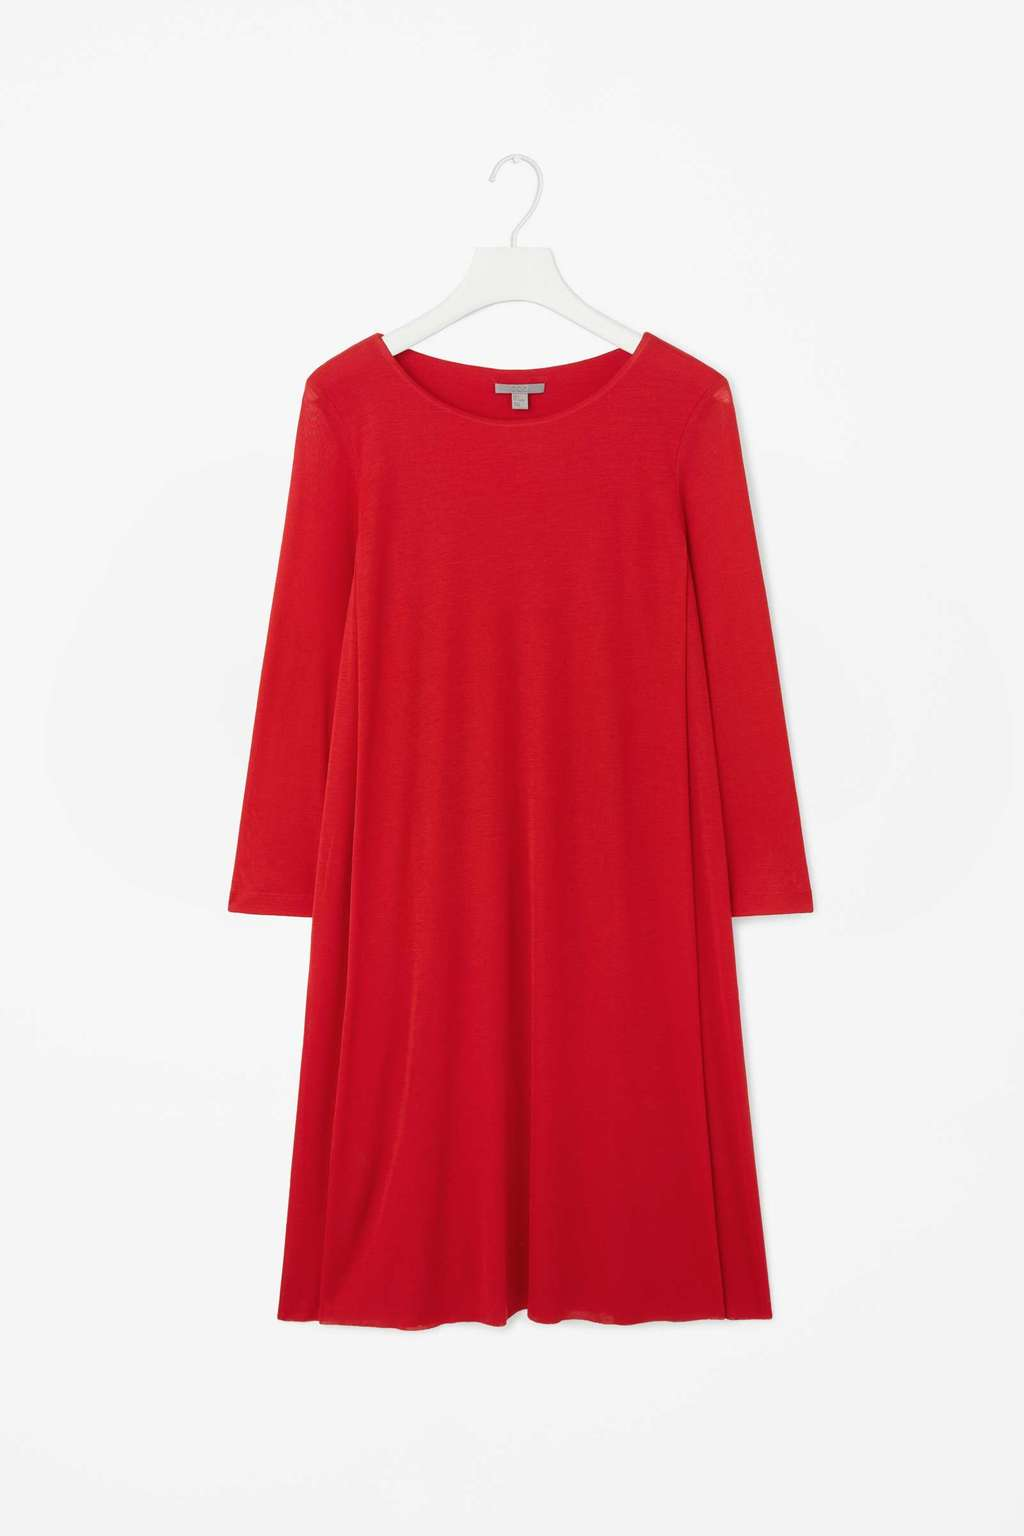 Double Layer Dress - style: tunic; neckline: round neck; fit: loose; pattern: plain; predominant colour: true red; occasions: casual, creative work; length: just above the knee; fibres: viscose/rayon - 100%; sleeve length: 3/4 length; sleeve style: standard; pattern type: knitted - fine stitch; texture group: jersey - stretchy/drapey; season: s/s 2015; wardrobe: highlight